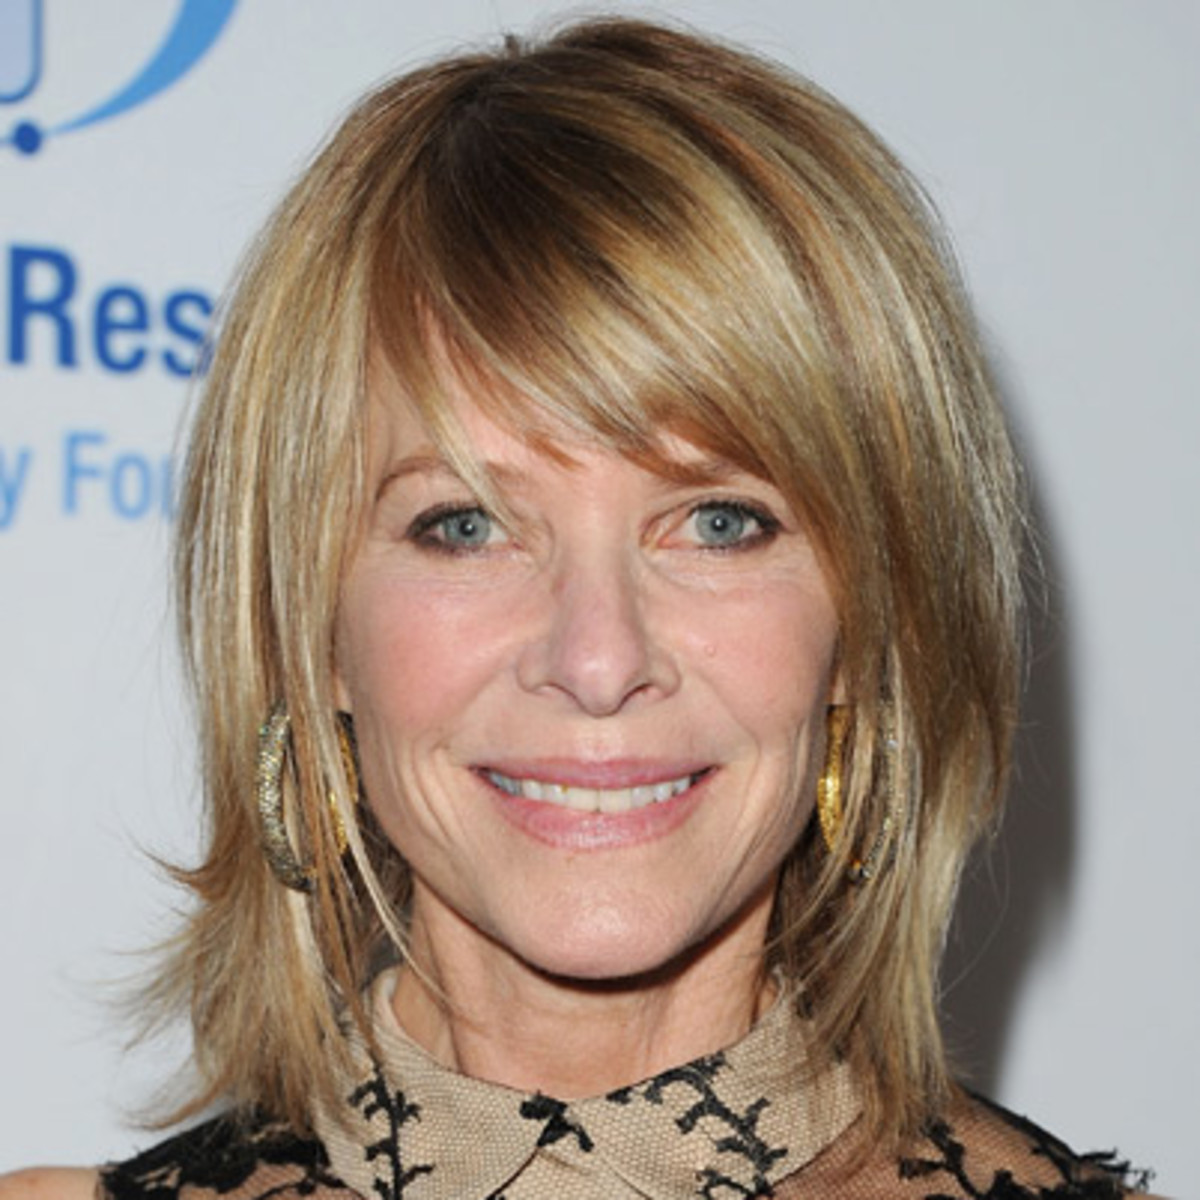 Kate Capshaw naked (97 photo), Topless, Cleavage, Feet, cleavage 2006